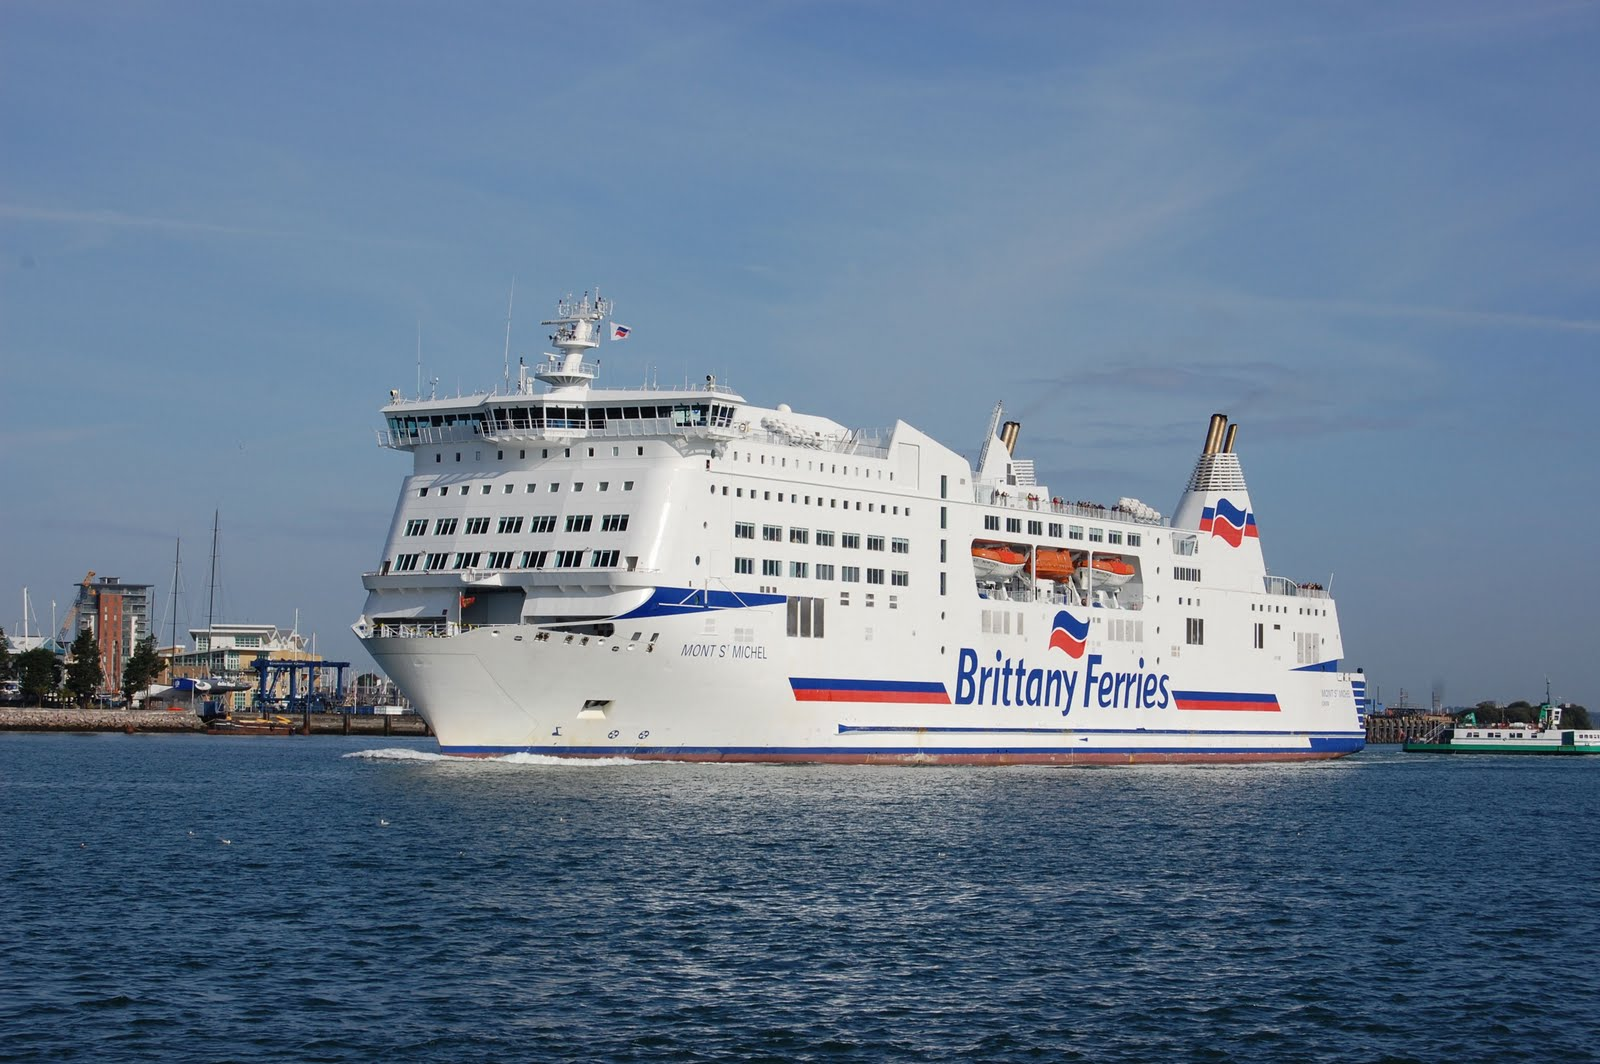 brittany ferries brittany ferries mont stmichel at portsmouth. Black Bedroom Furniture Sets. Home Design Ideas